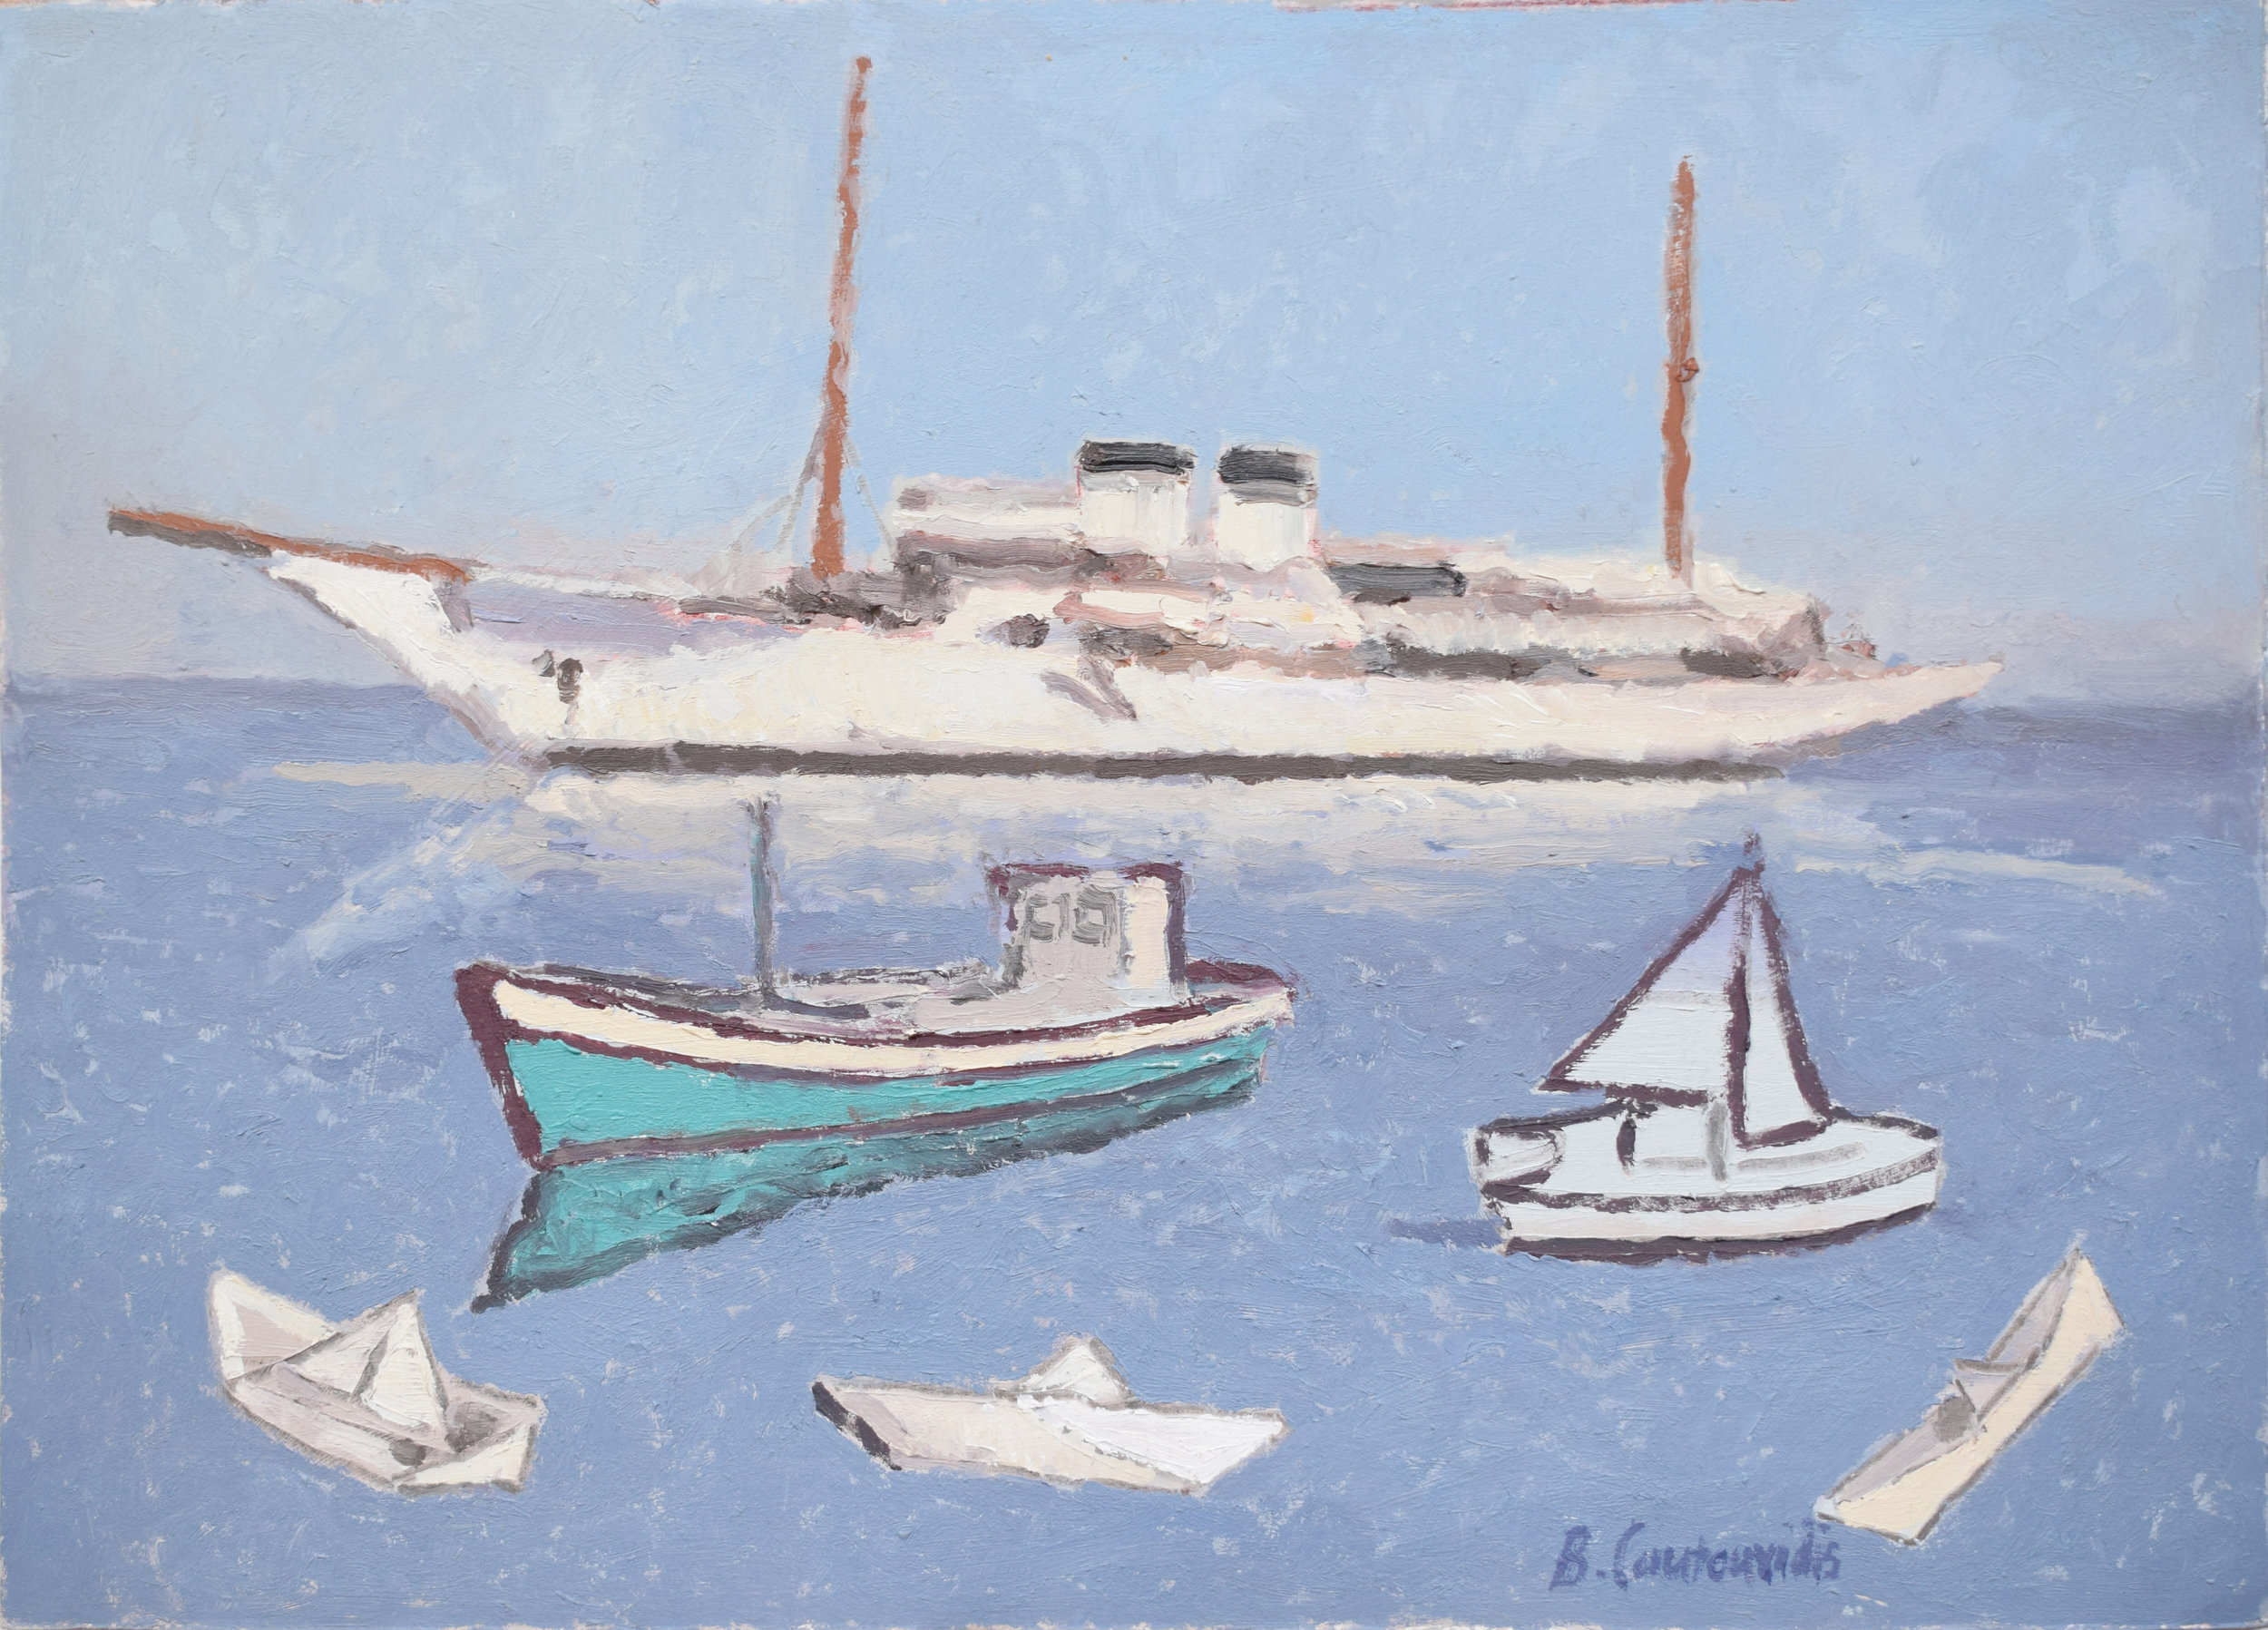 Kalk Bay Selection of Boats - Oil on Paper - 320 x 230